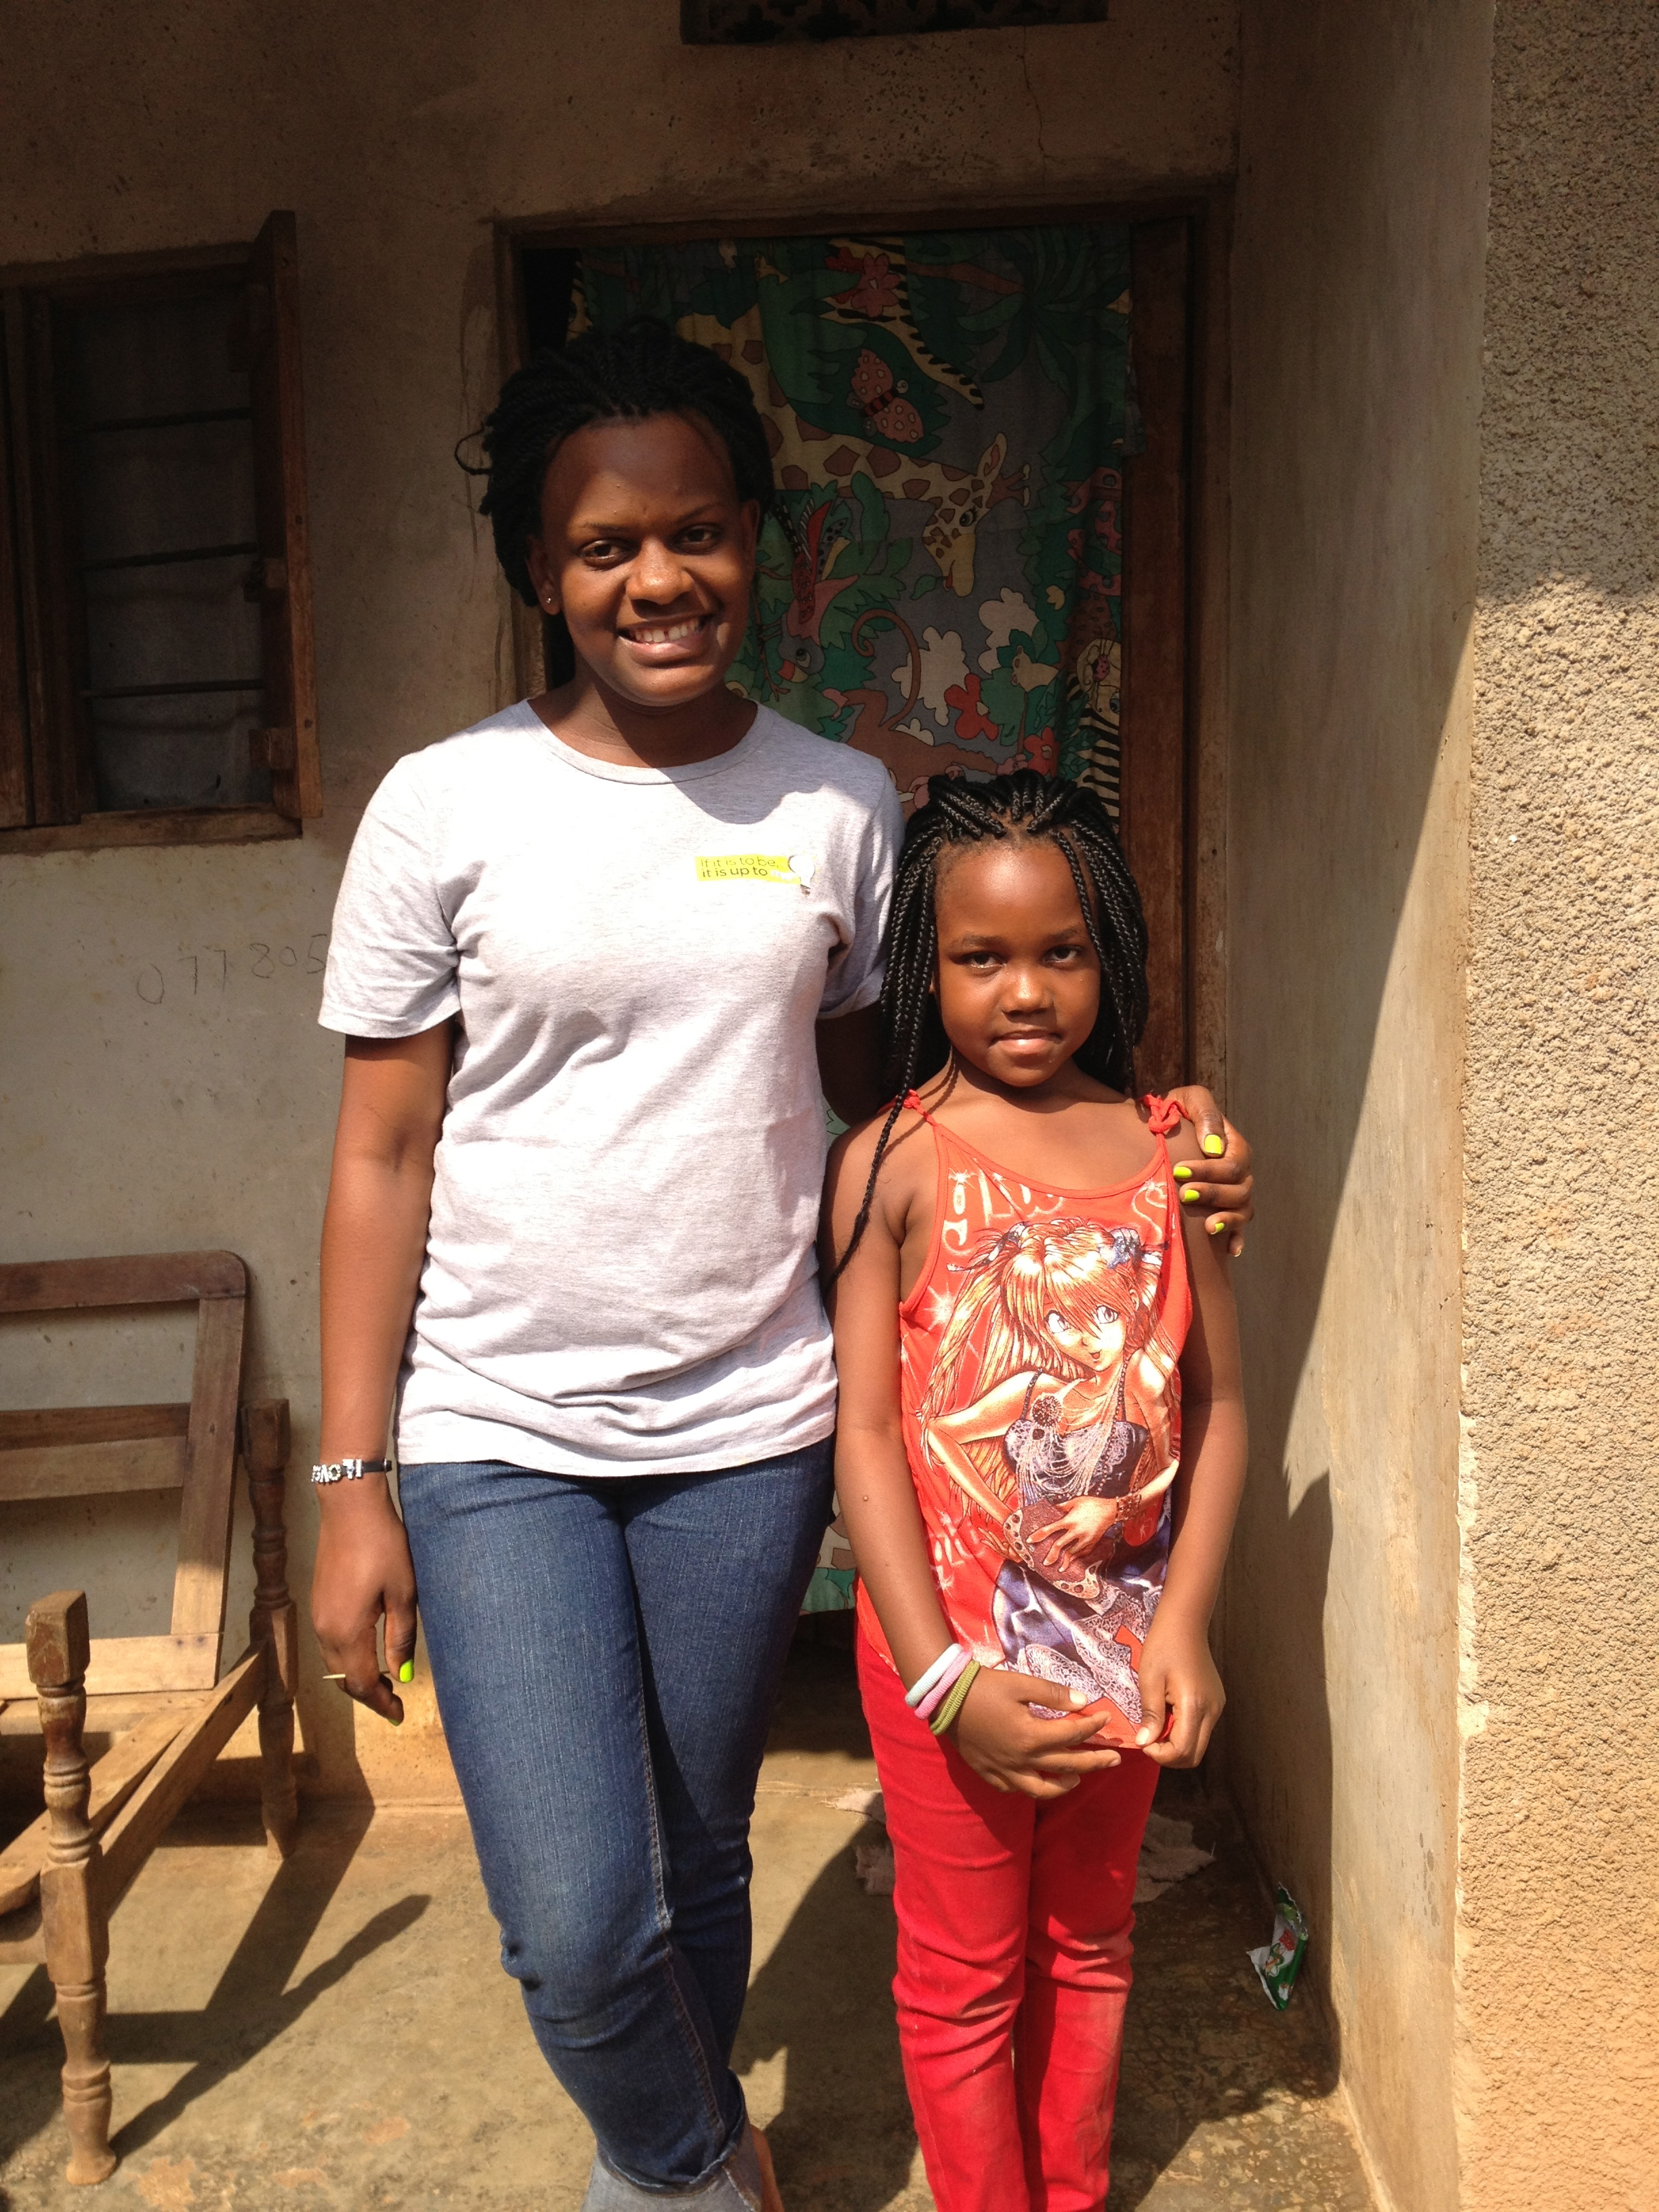 Maureen, one of Empower African Children's University scholars, sets an example for her young cousin.